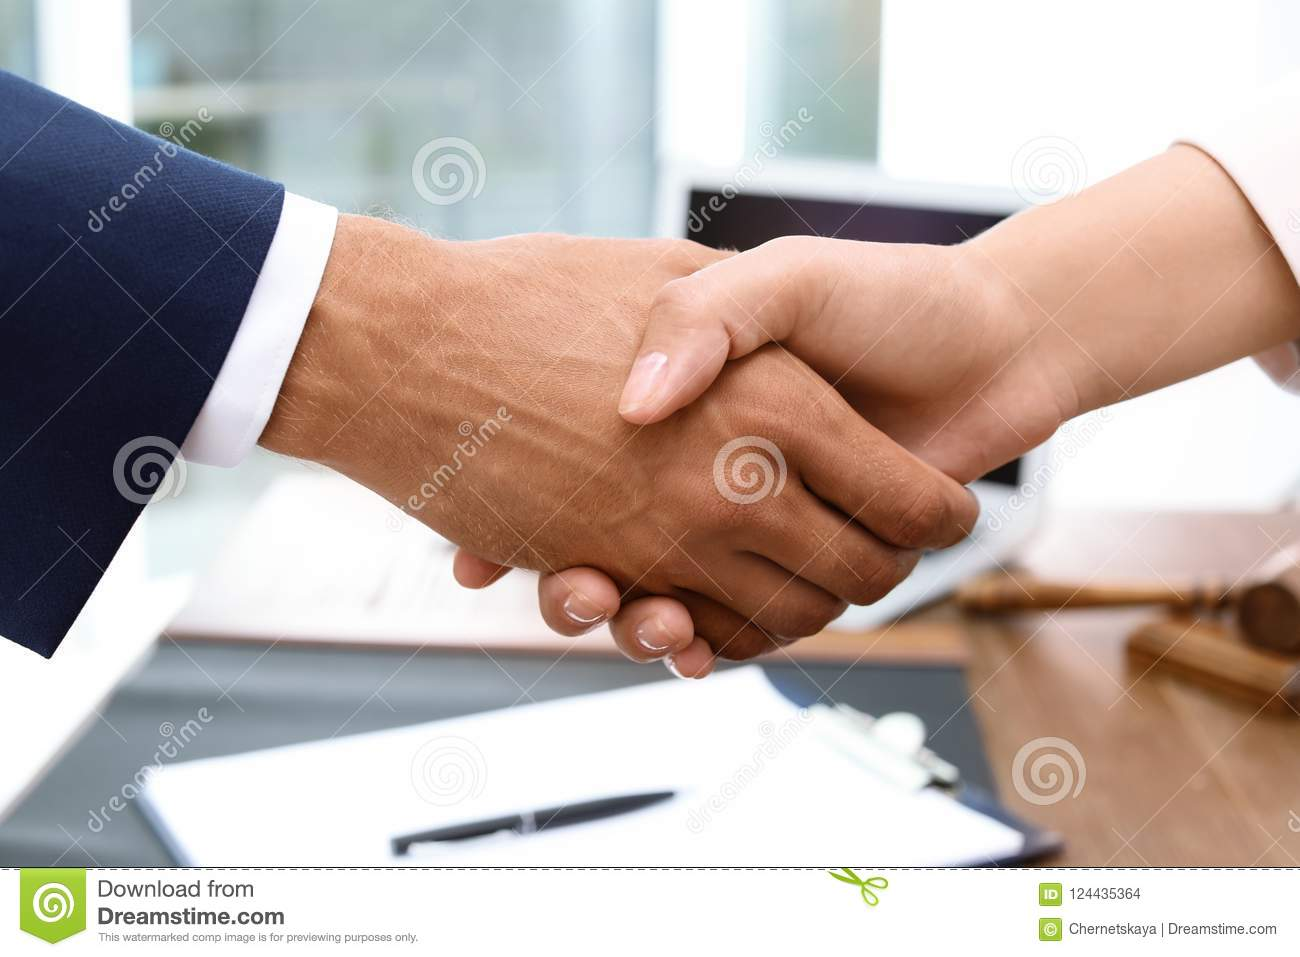 Male lawyer shaking hands with woman over table